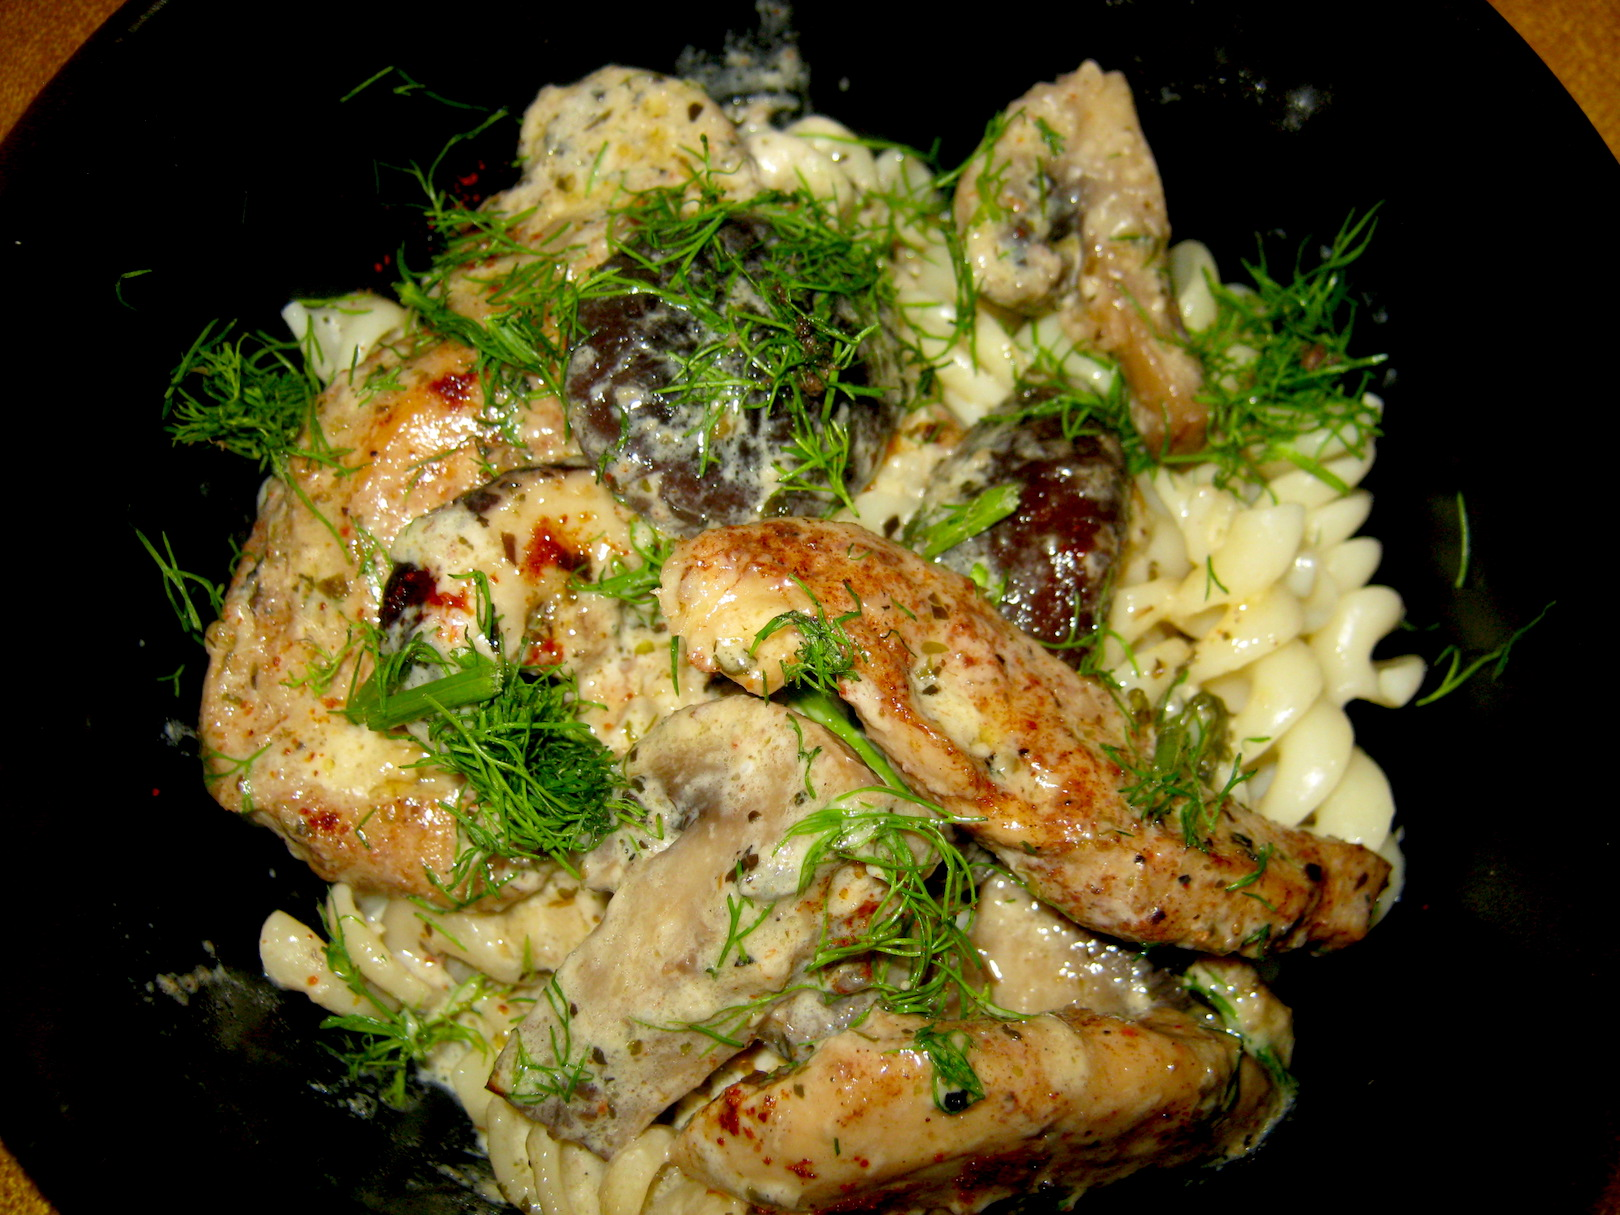 Chicken mushroom sauce with pasta